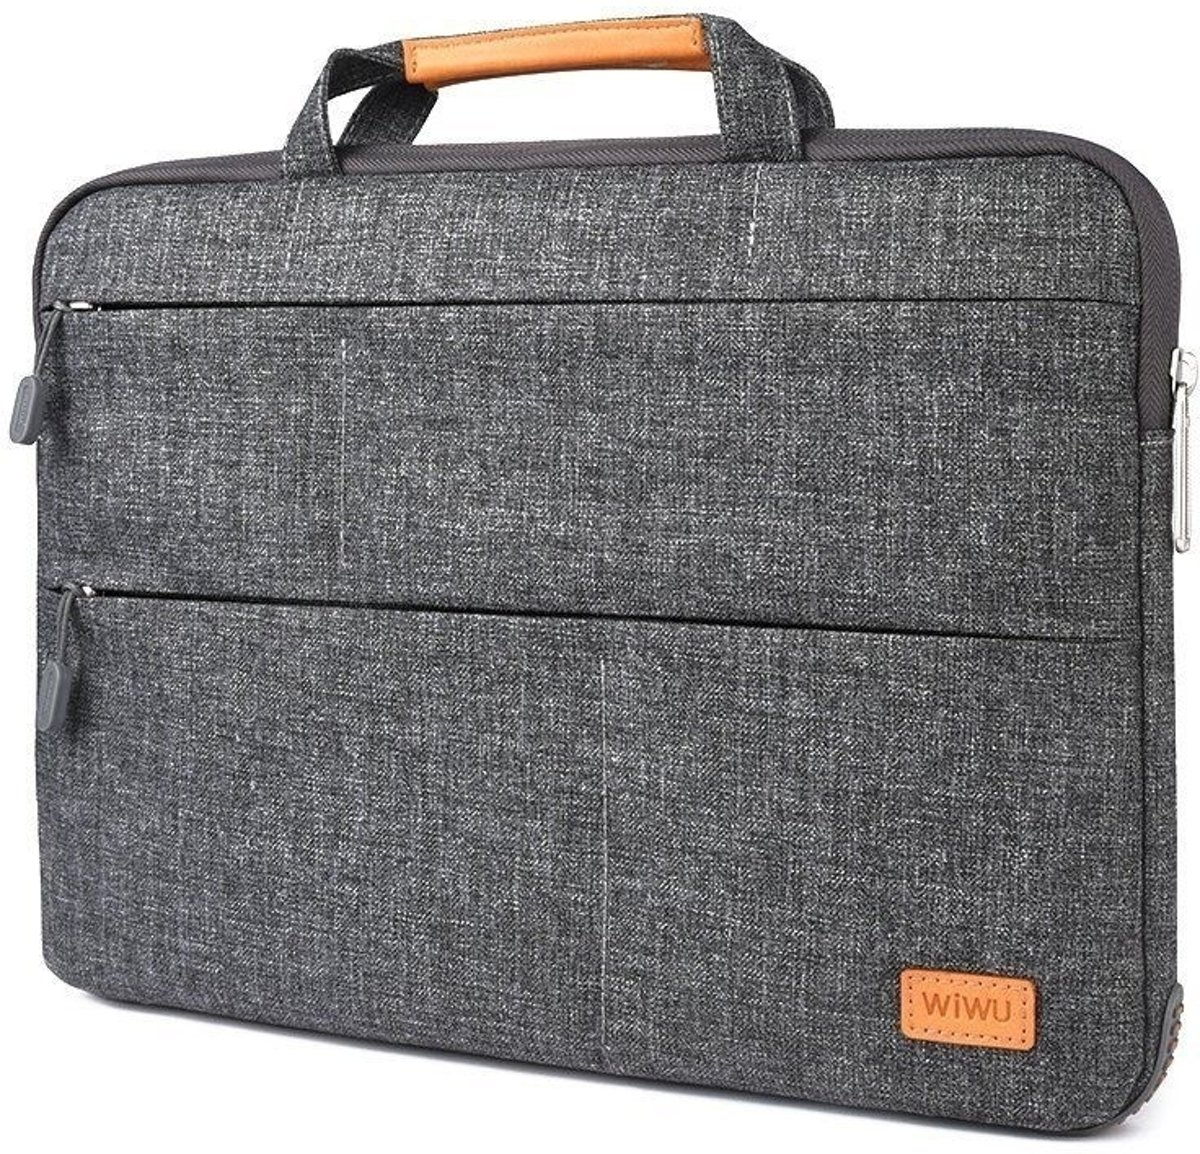 WiWu - Laptop sleeve 15.4 inch - Smart Stand Laptoptas - Grijs